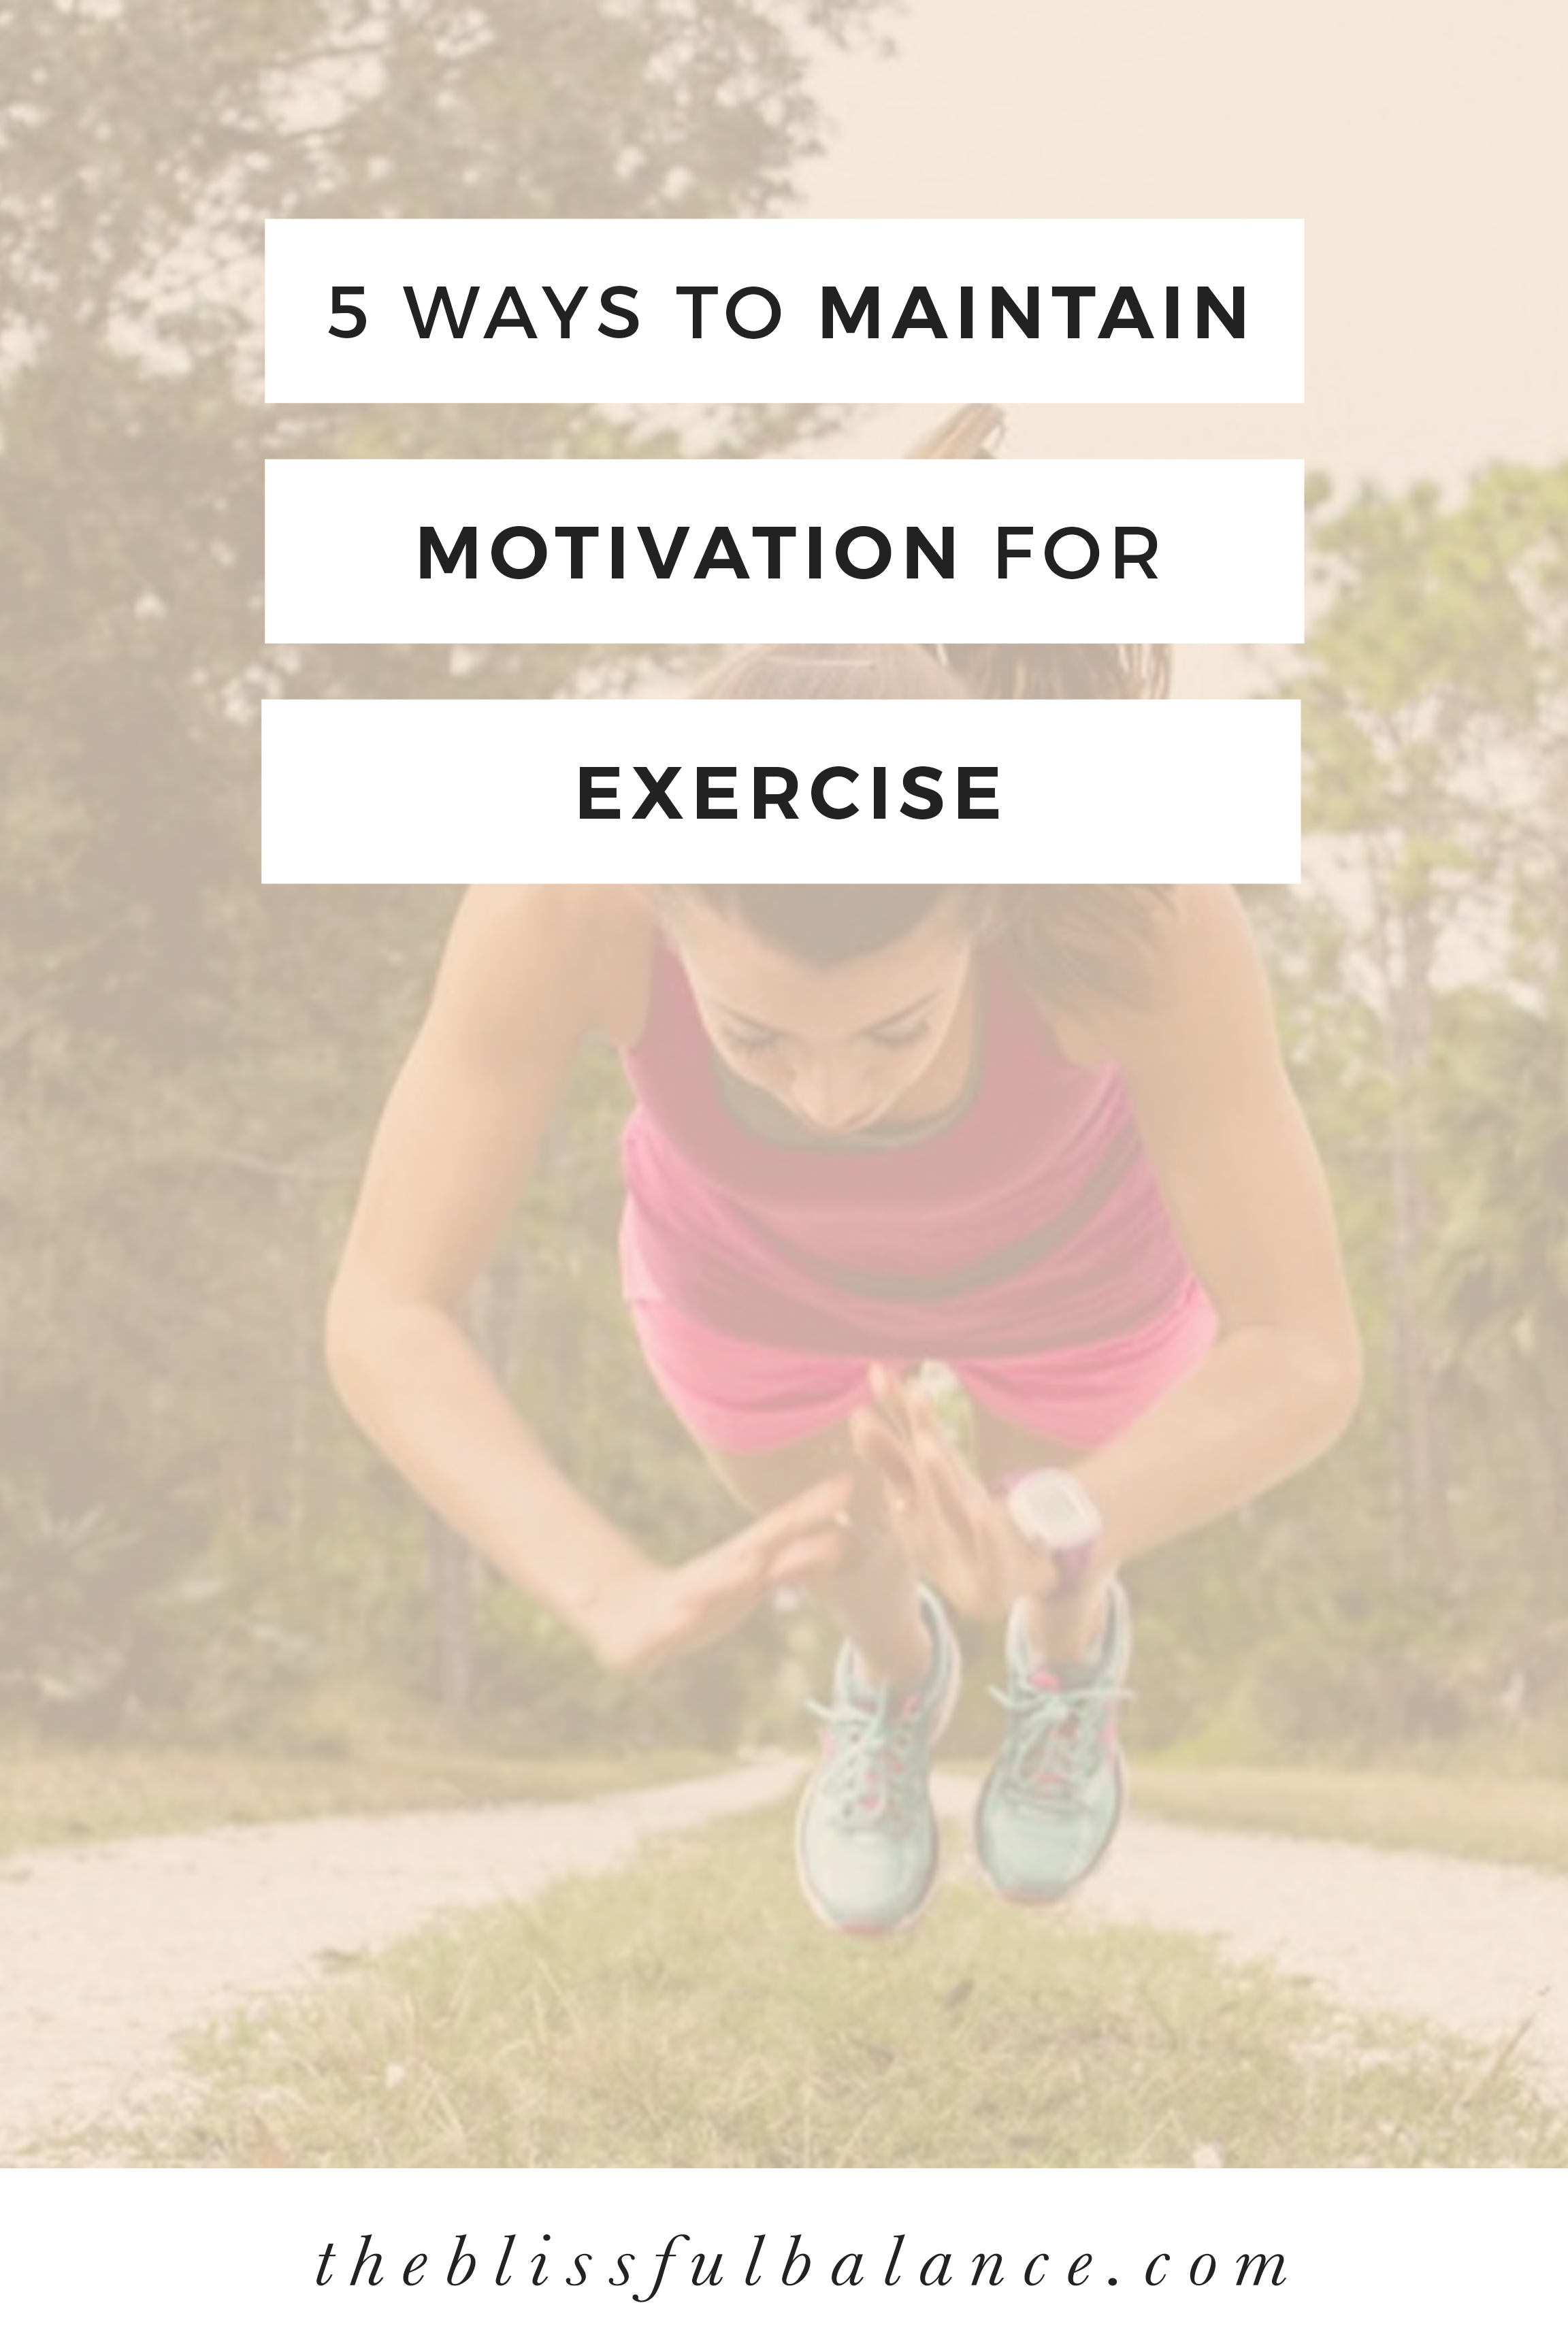 5 Ways to Maintain Motivation for Exercise